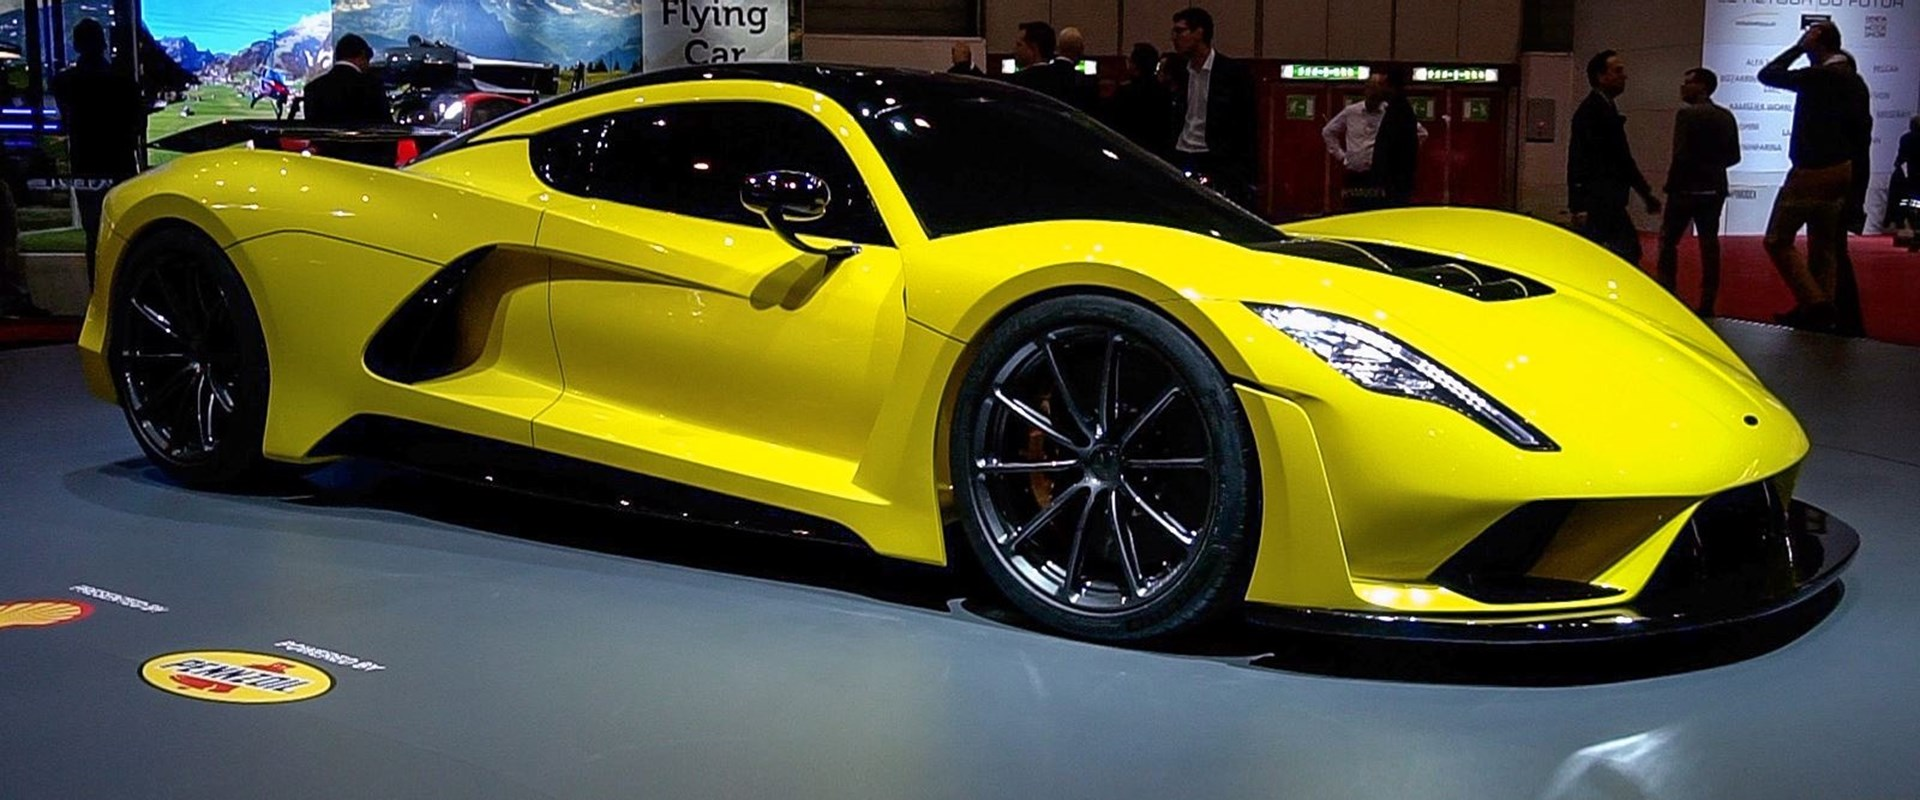 Hennessey Venom F5 Aiming For 311 Mph Top Speed Carbuzz